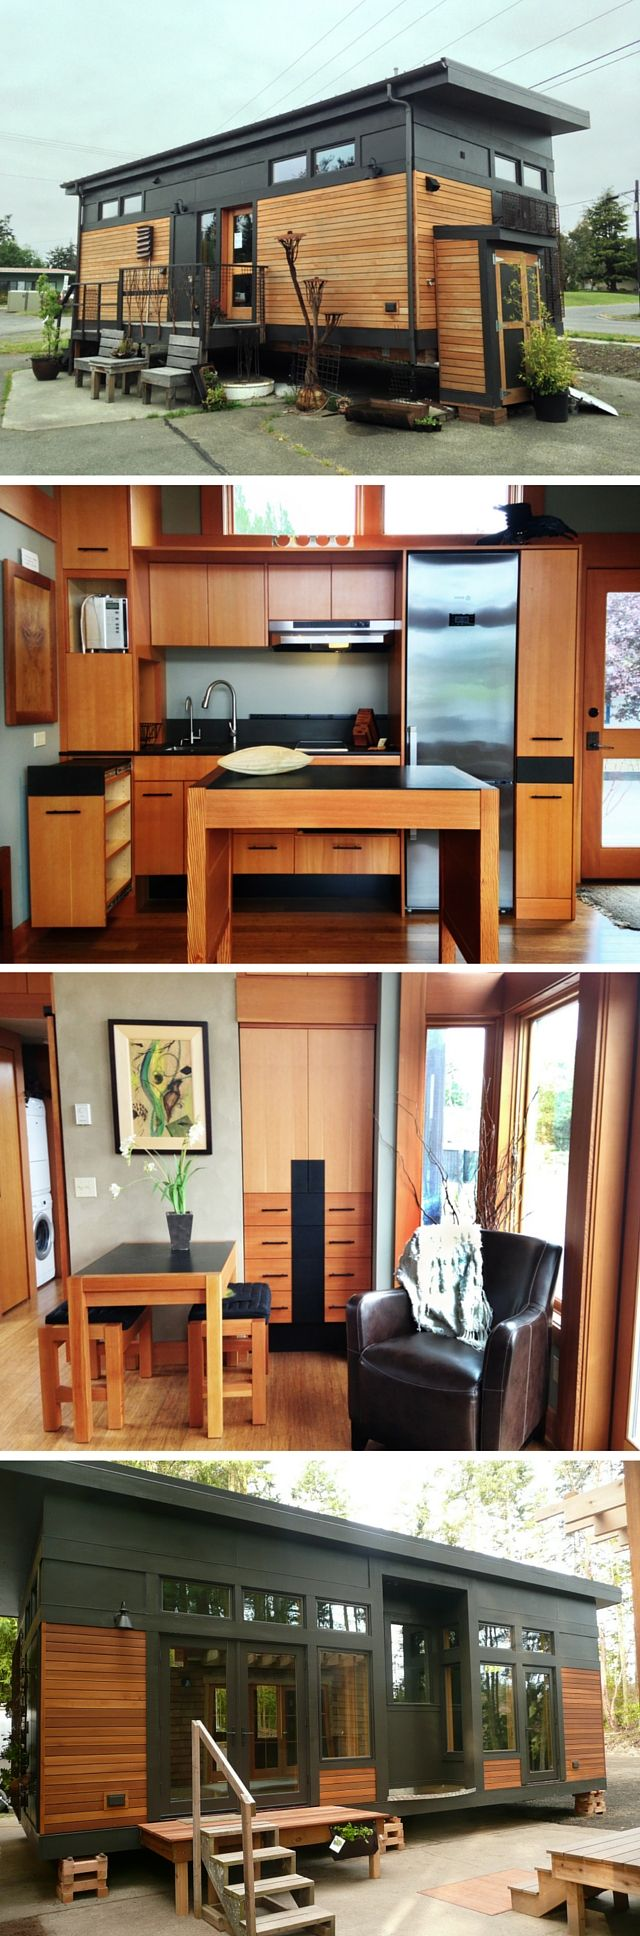 Interior design ideas for very small homes - Can I Move In Tomorrow Just Lovin This Model A 450 Sq Ft Tiny House Named The Waterhaus One Of The Most Beautiful Tiny House Interiors I Ve Seen